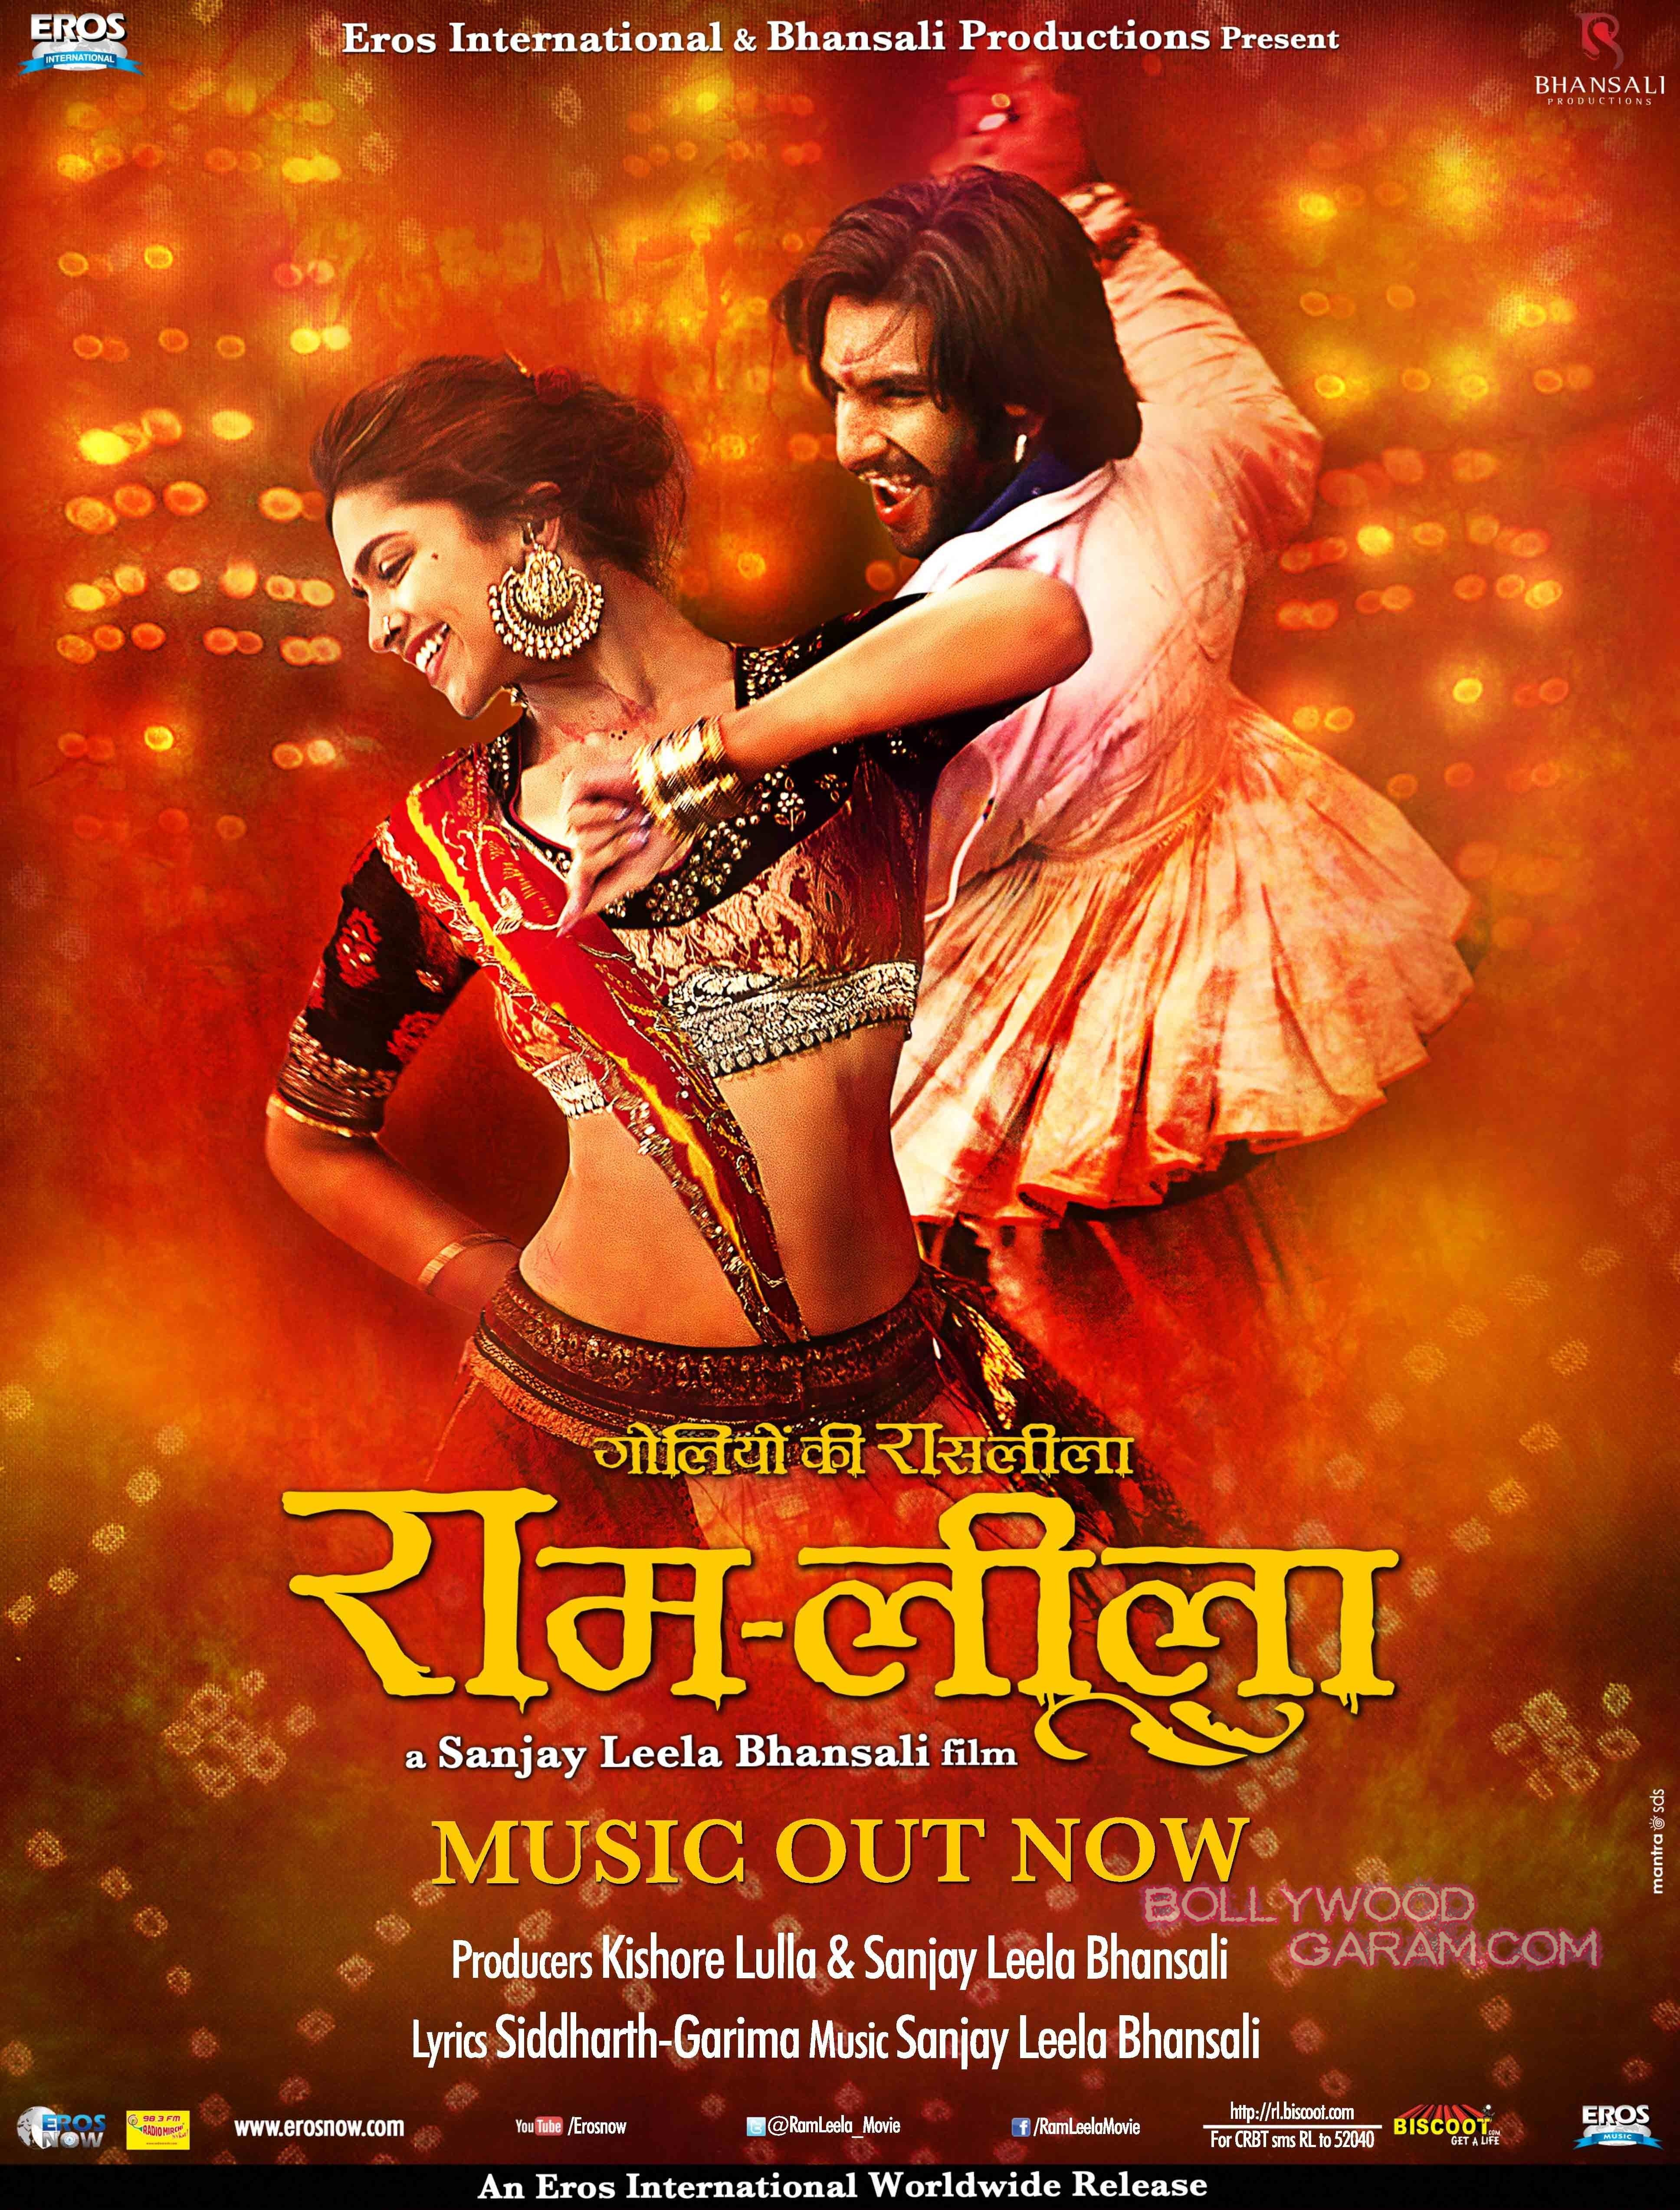 Ram Leela new poster and movie still revealed